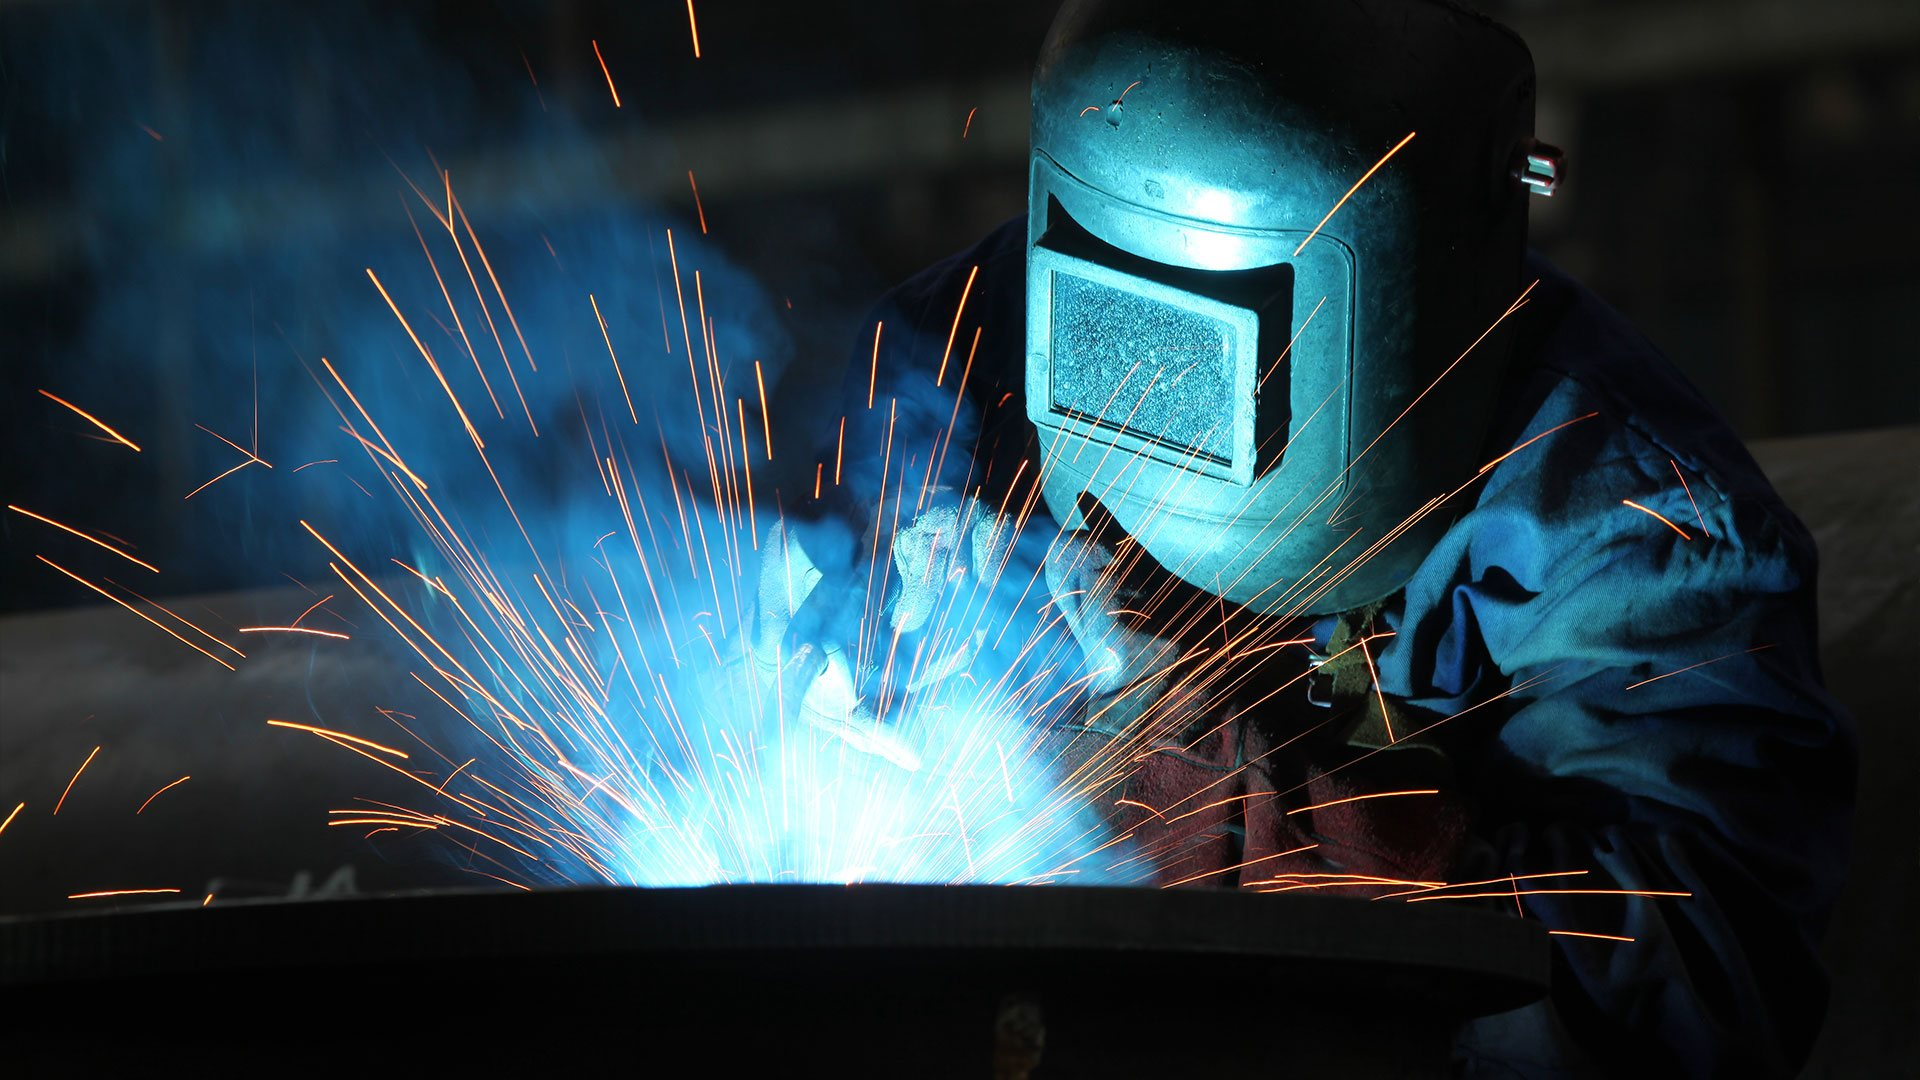 Welding Wallpaper